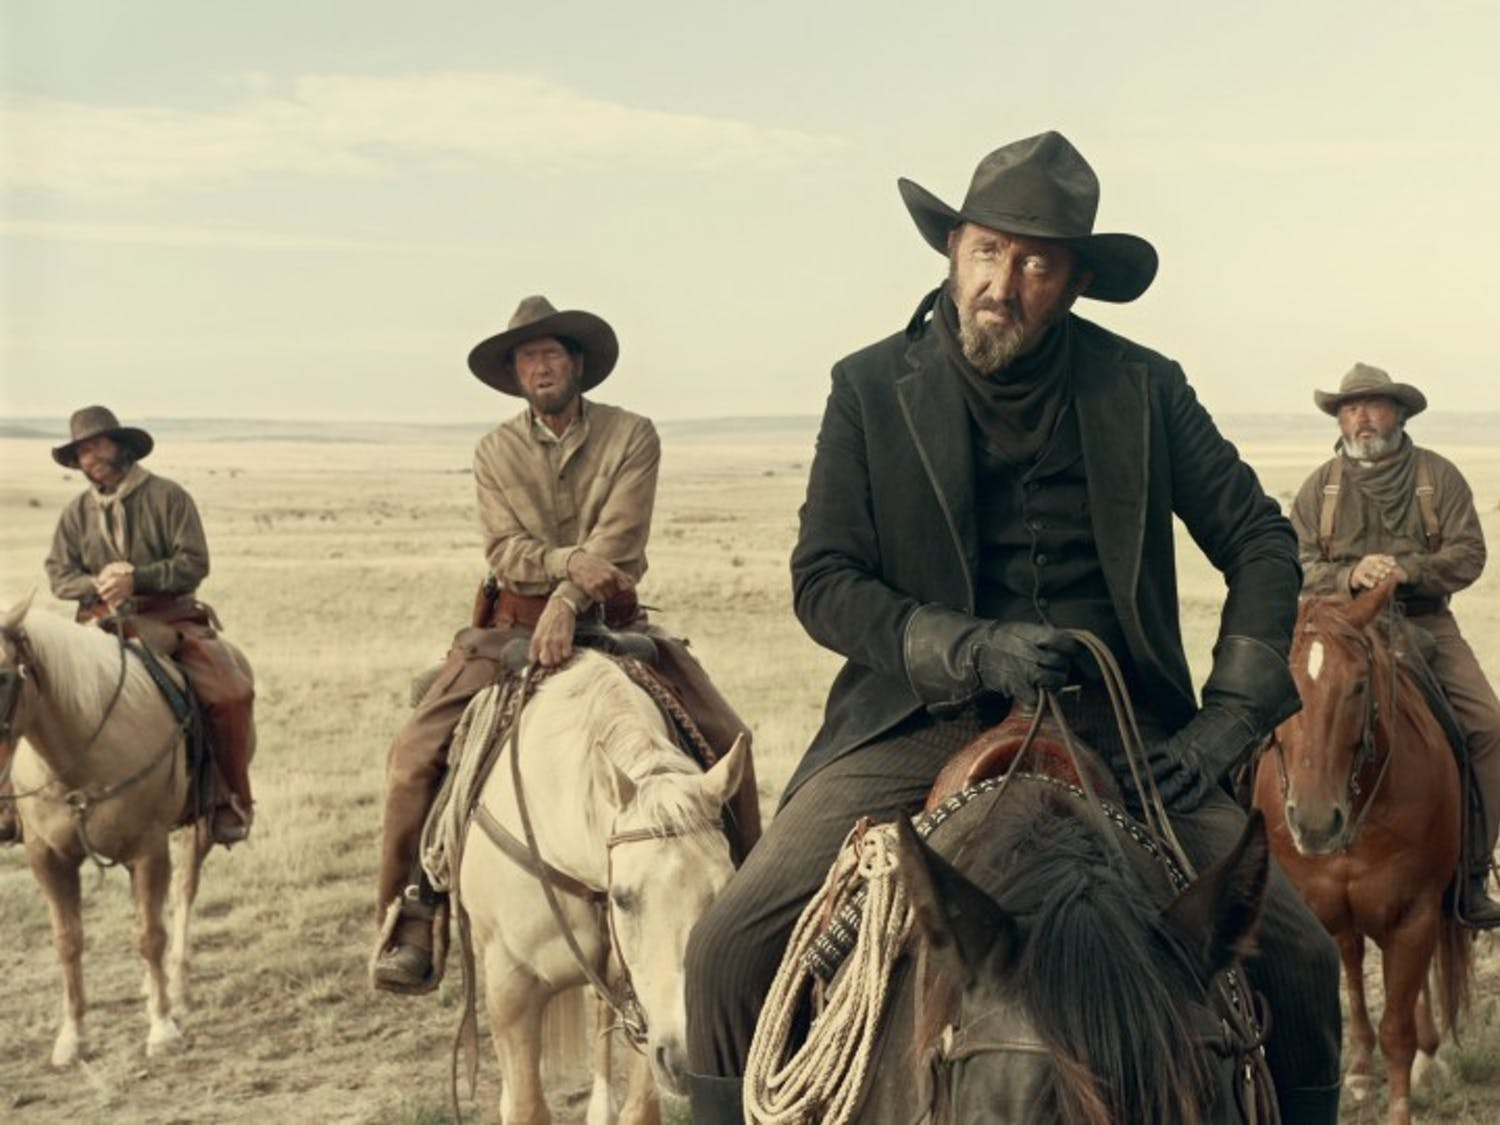 """Ralph Ineson as """"The Man in Black"""" in The Ballad of Buster Scruggs, a film by Joel and Ethan Coen."""